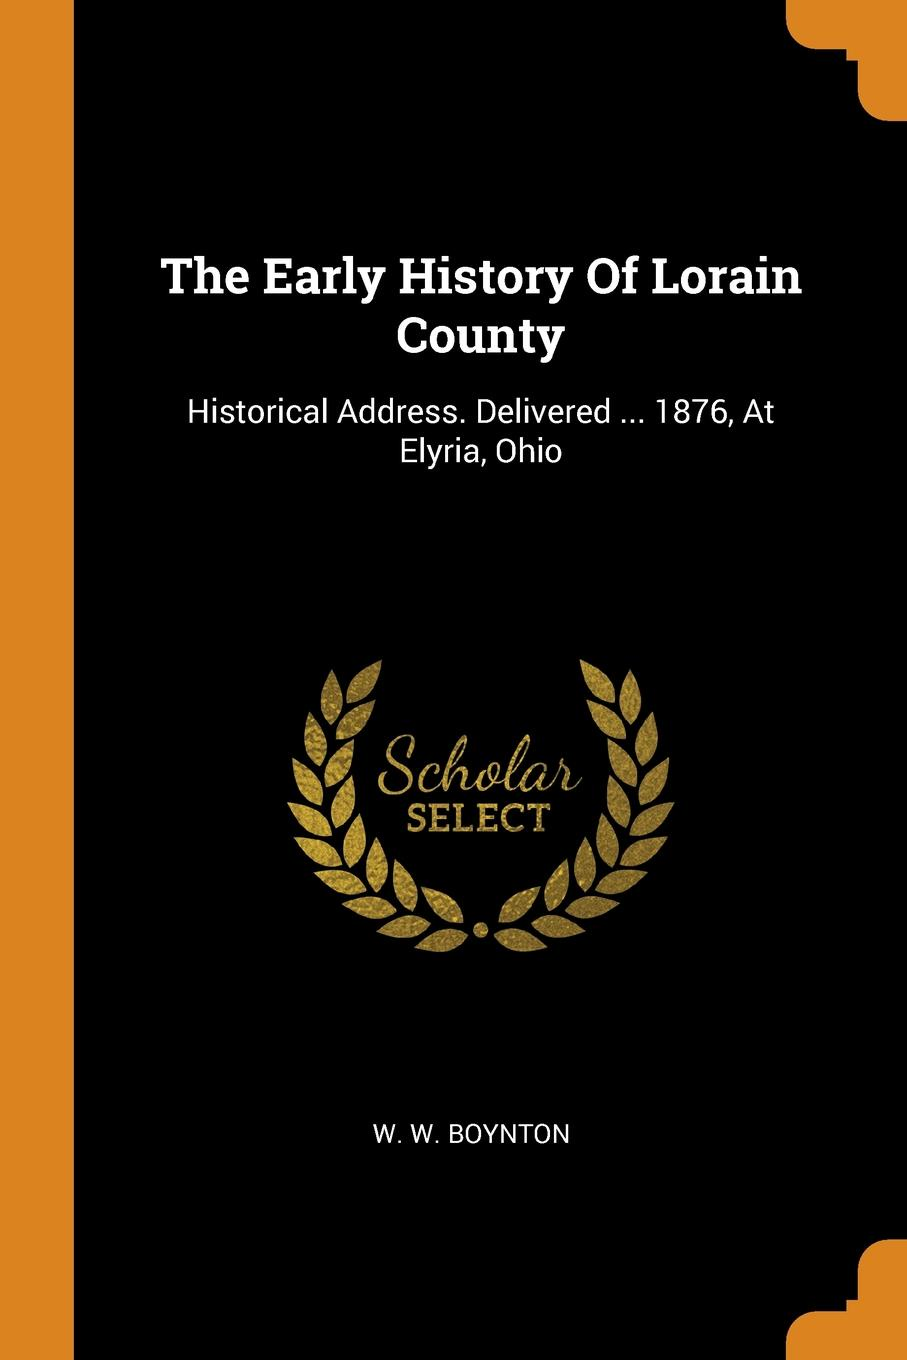 W. W. Boynton The Early History Of Lorain County. Historical Address. Delivered ... 1876, At Elyria, Ohio